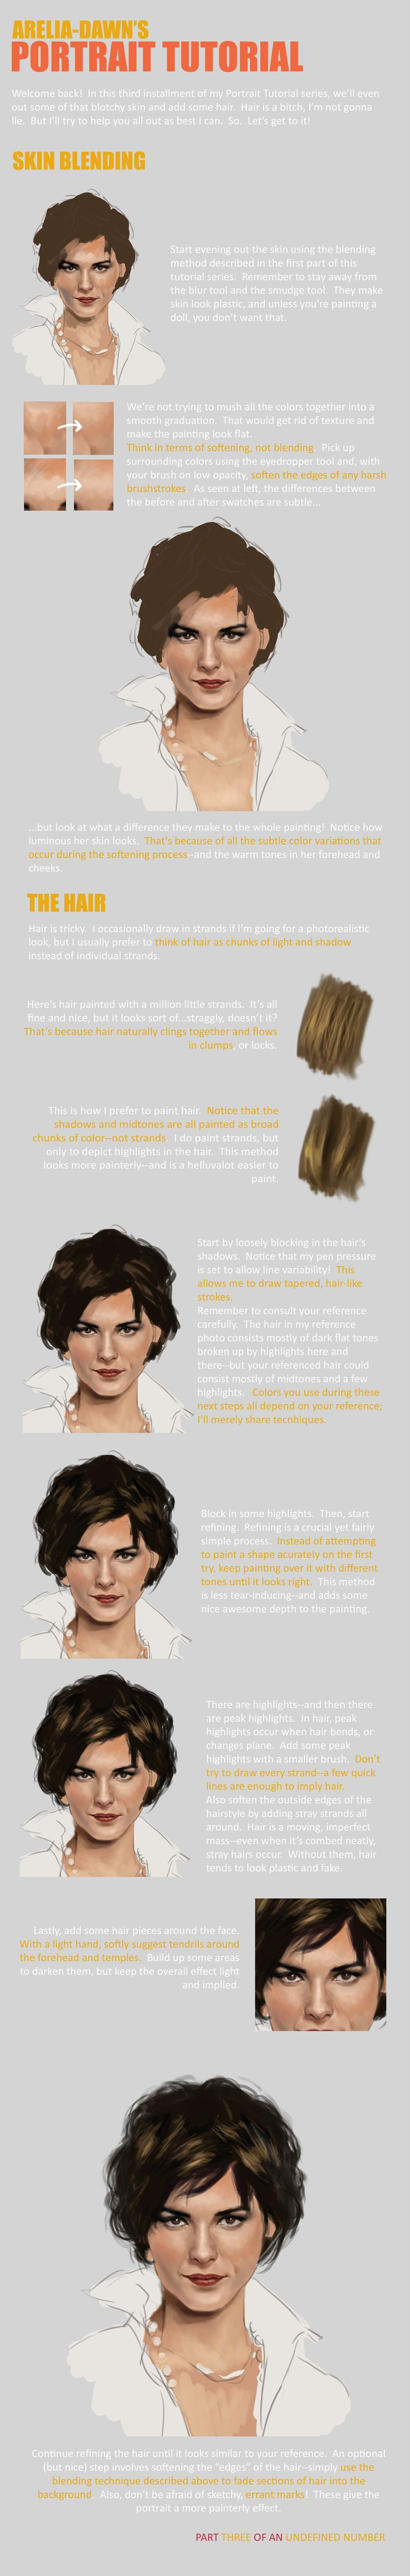 Portrait Tutorial, Part Three by ~arelia-dawn on deviantART ✤ || CHARACTER DESIGN REFERENCES | キャラクターデザイン | çizgi film • Find more at https://www.facebook.com/CharacterDesignReferences & http://www.pinterest.com/characterdesigh if you're looking for: #color #theory #contrast #animation #how #to #draw #paint #drawing #tutorial #lesson #balance #sketch #colors #painting #process #line #art #comics #tips #cartoon || ✤